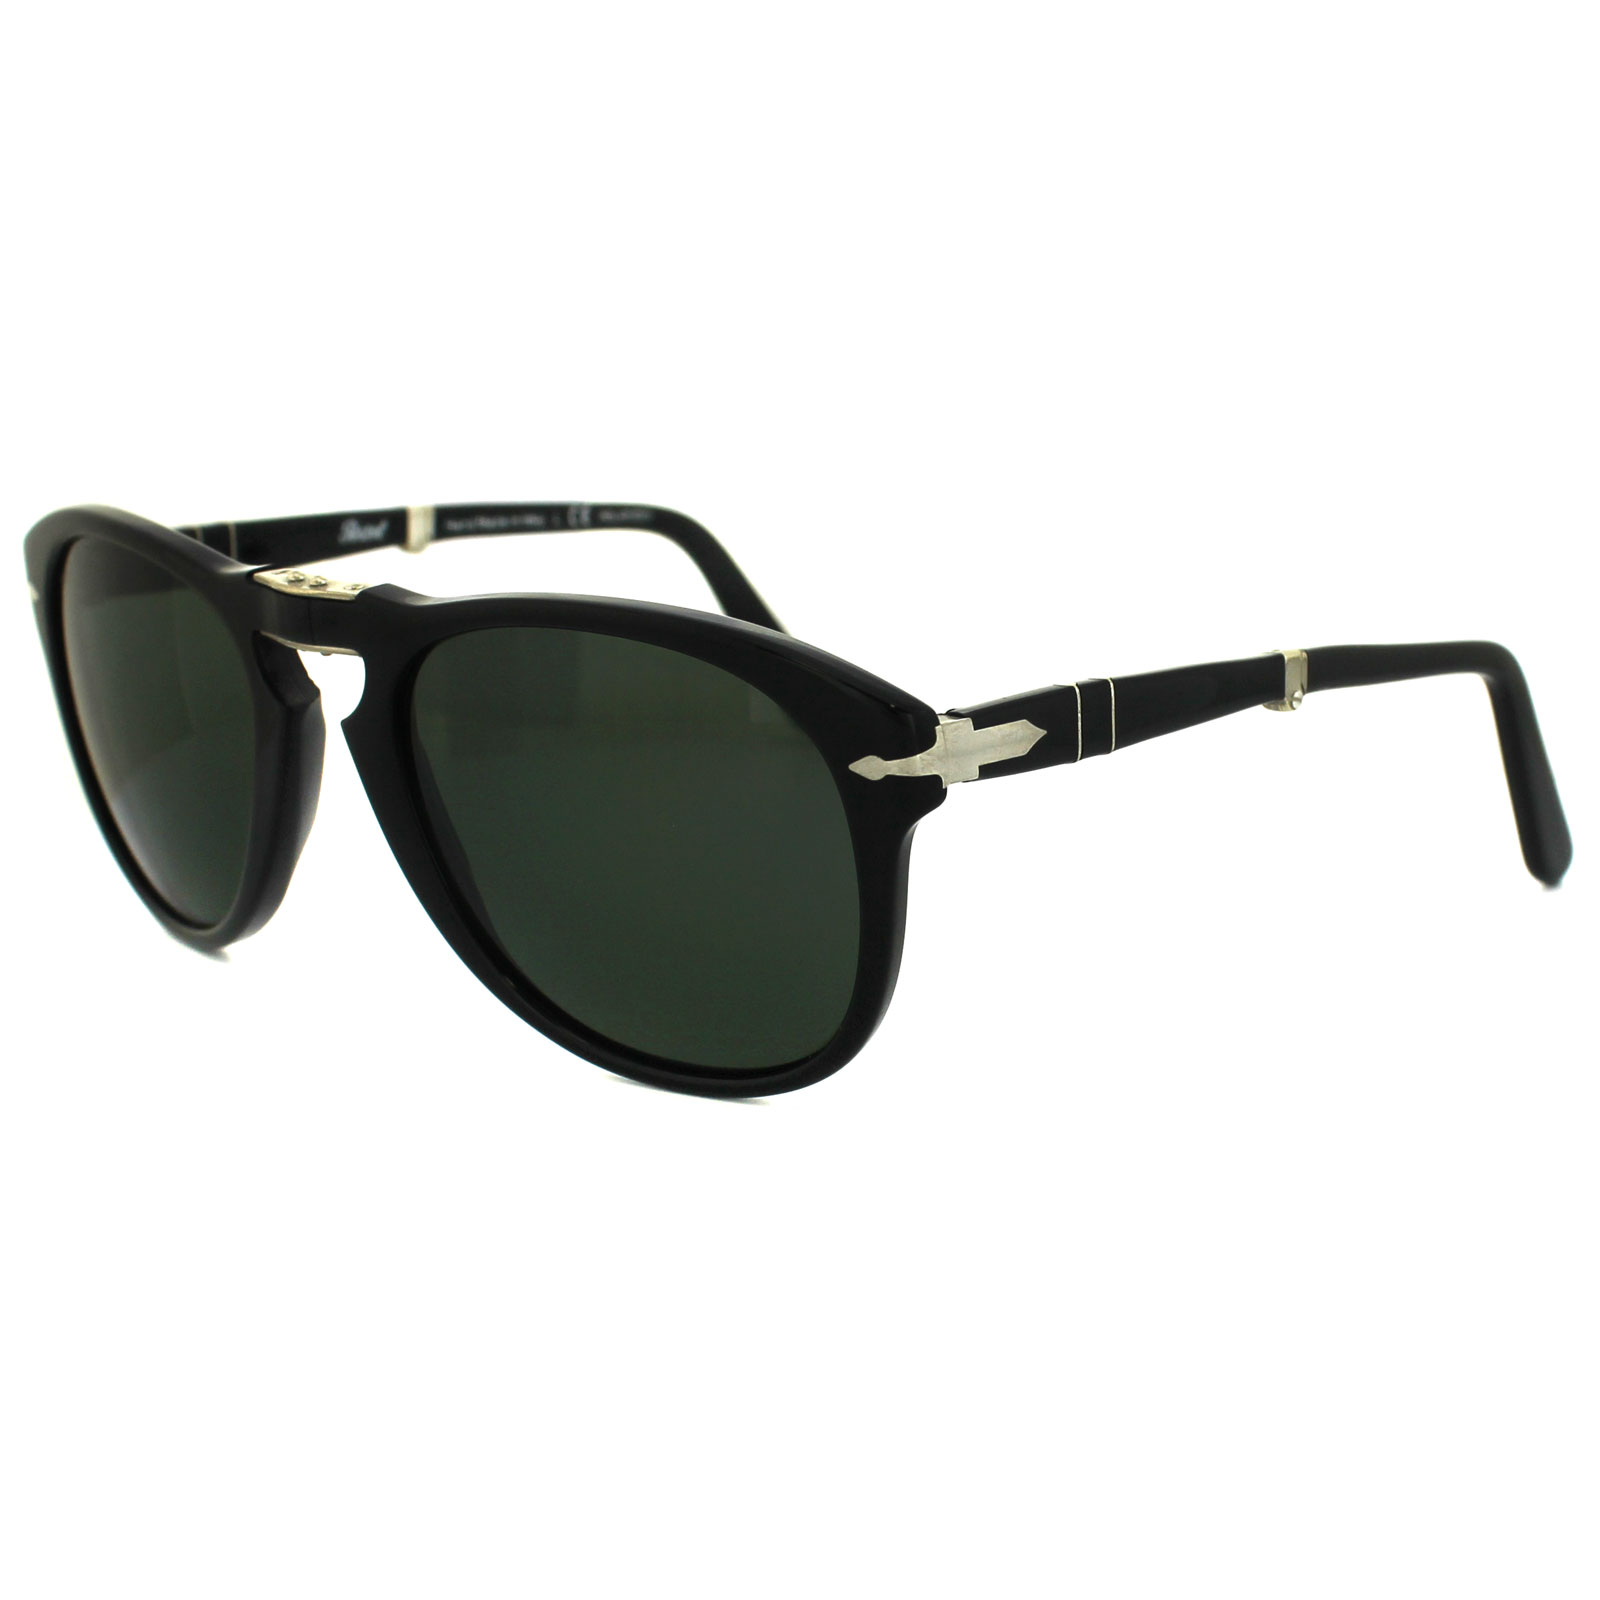 5d19ea0f880 Sentinel Persol Sunglasses 714 95 58 Black Green Polarized Folding Steve  McQueen 54mm